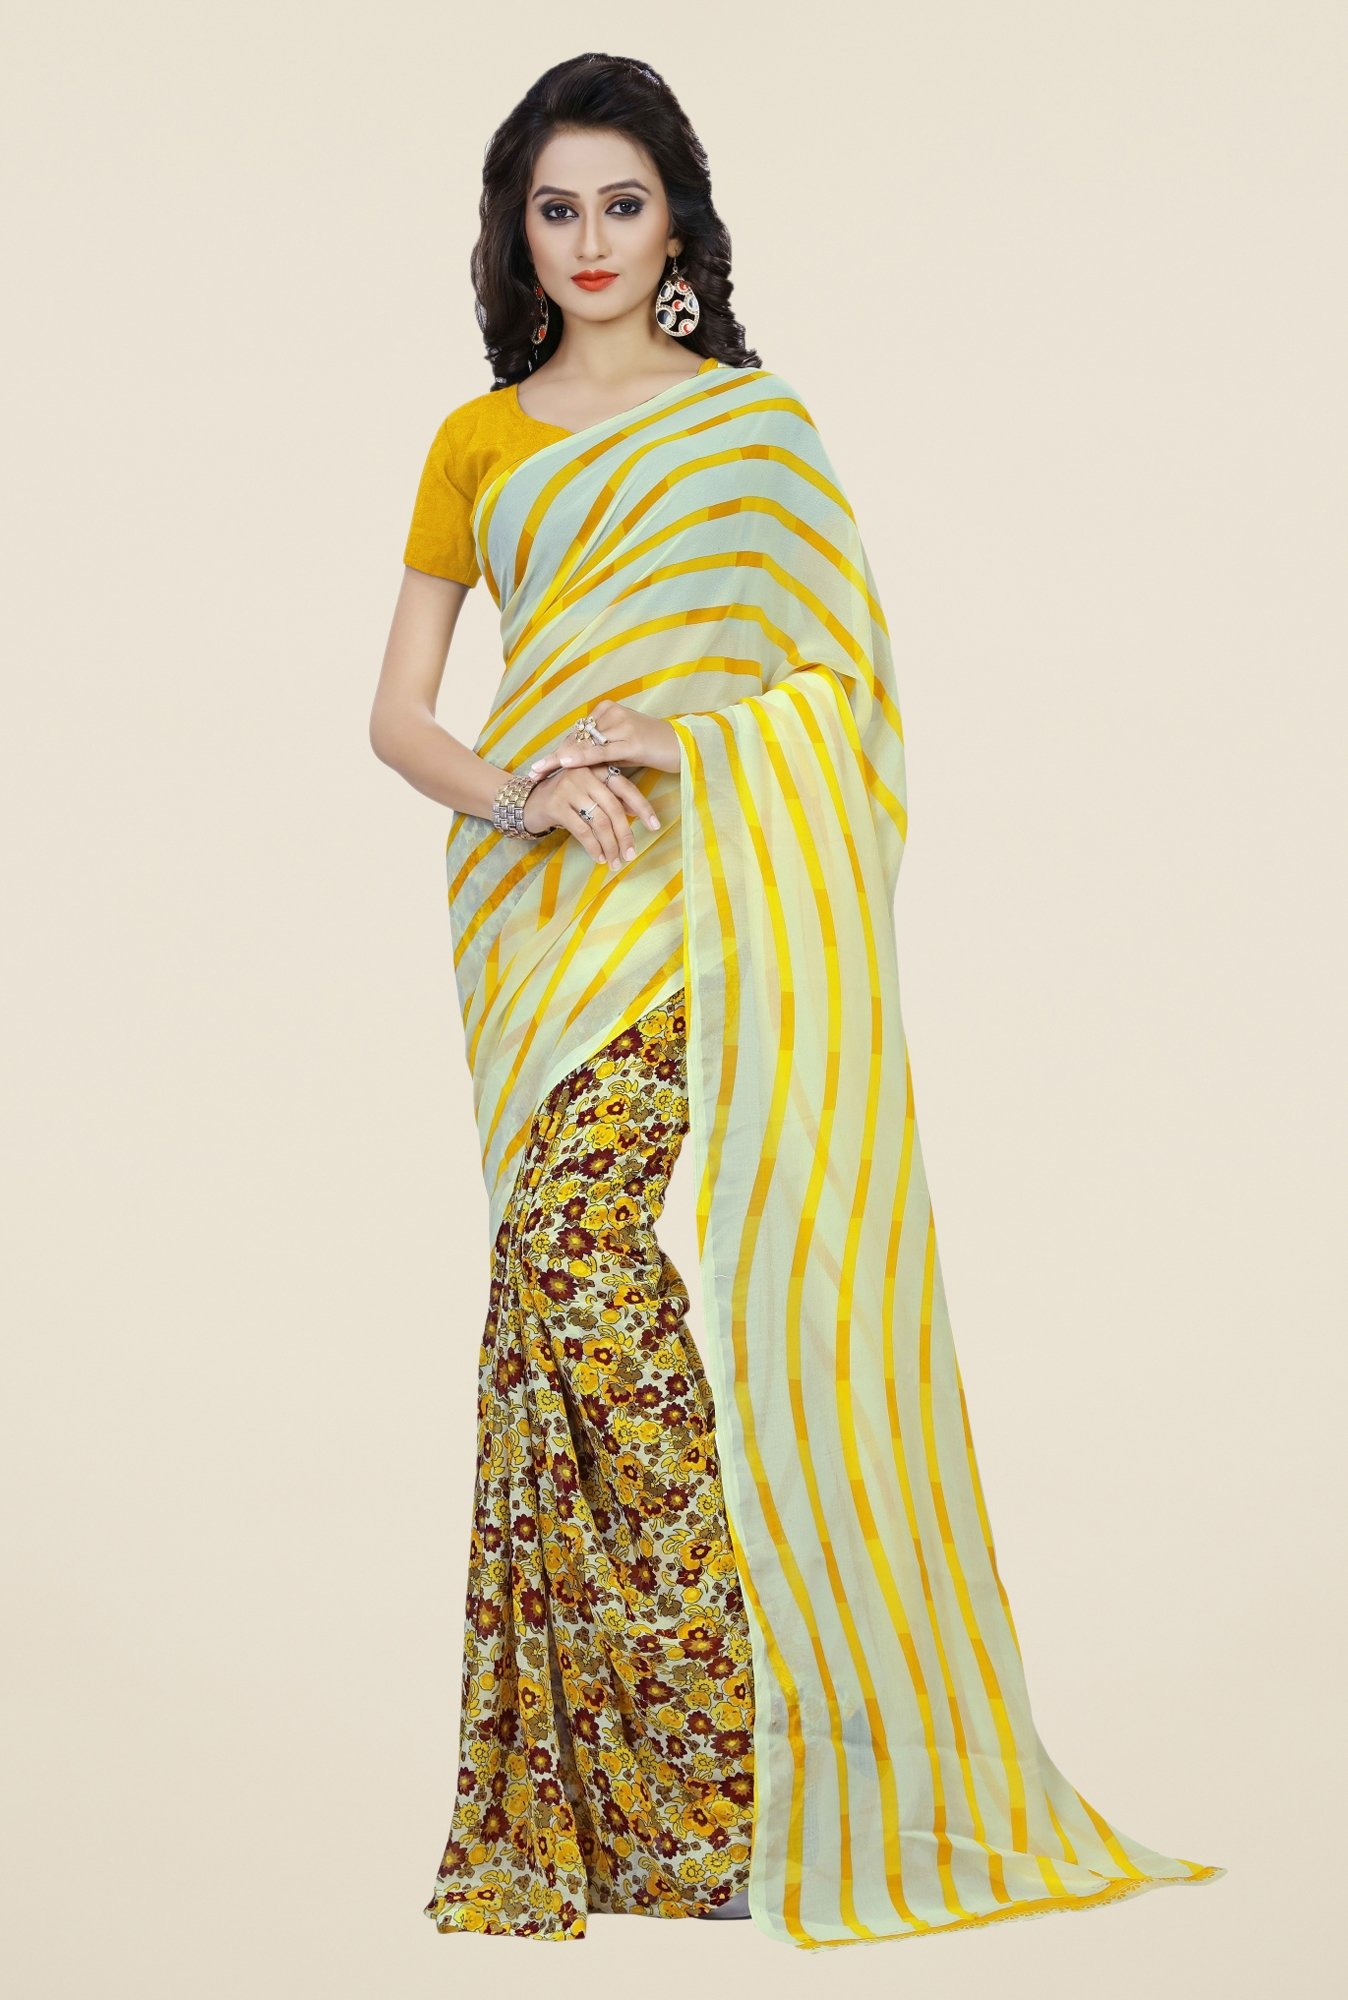 Triveni Yellow Faux Georgette Half and Half Saree